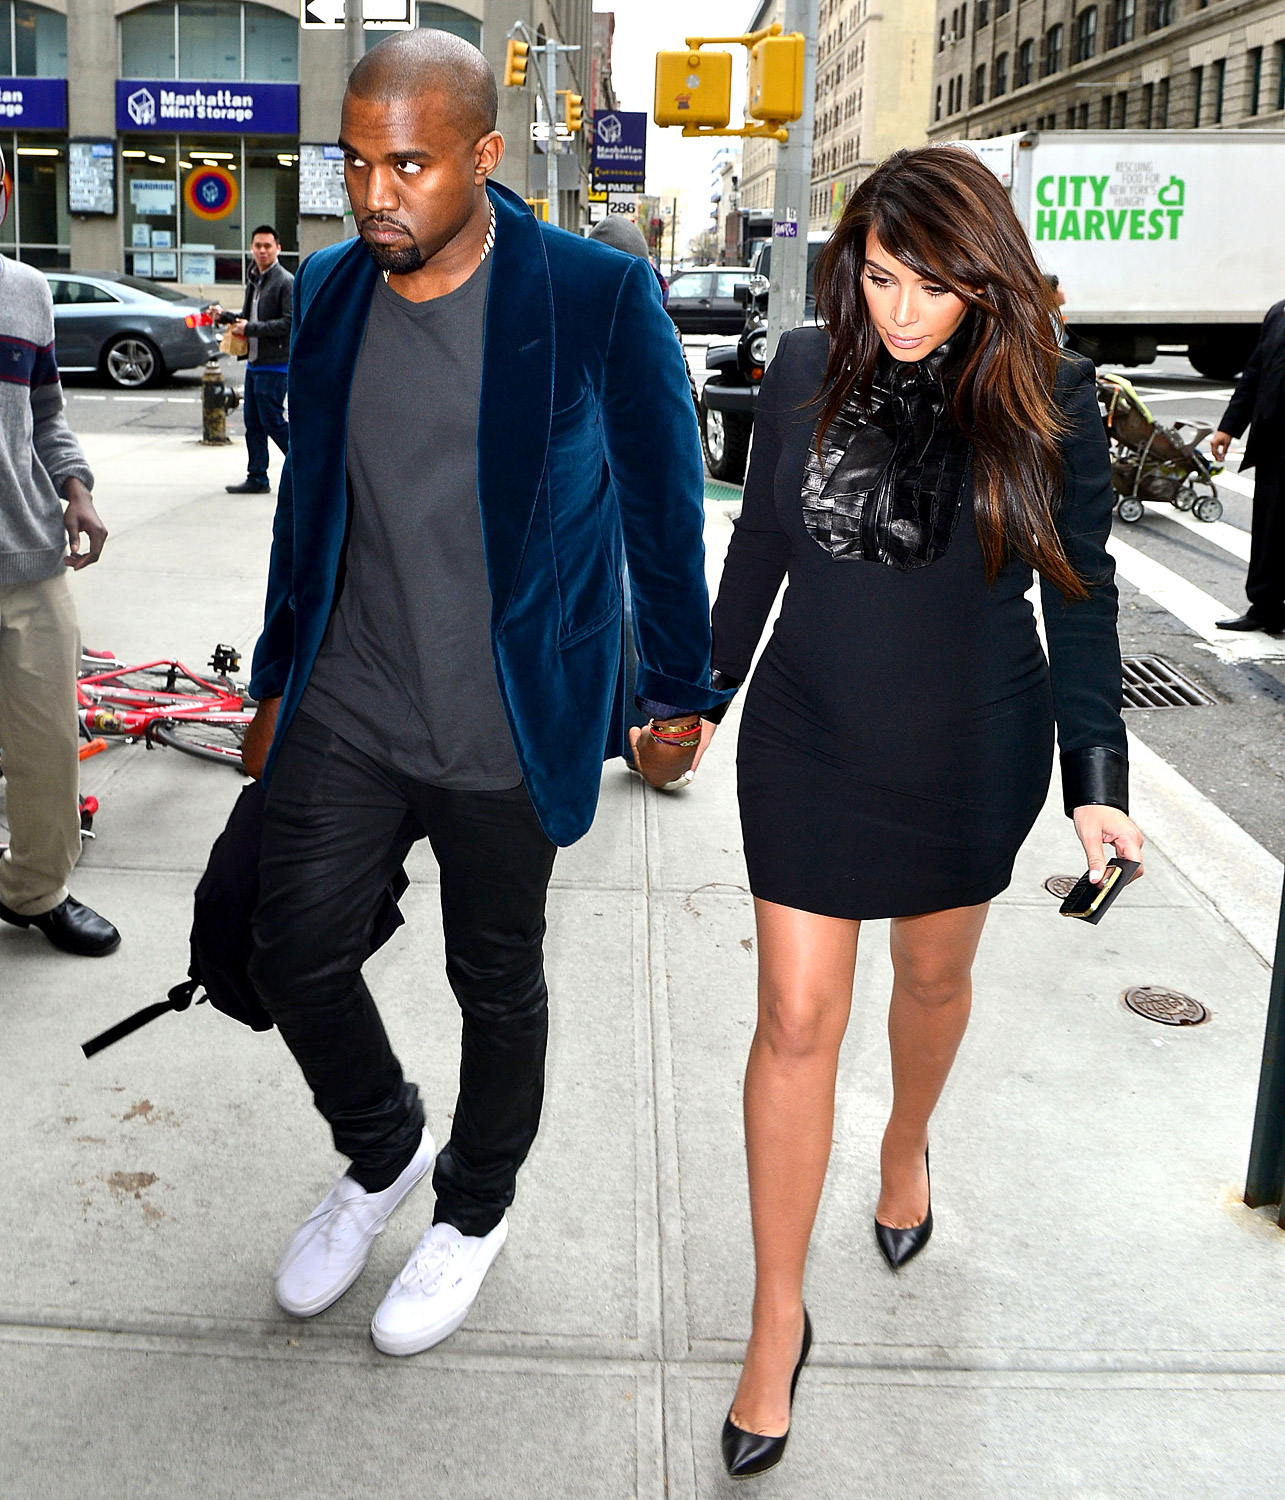 Gabriella Onion Booty with kanye proposed to kim kardashian - hot or not? |